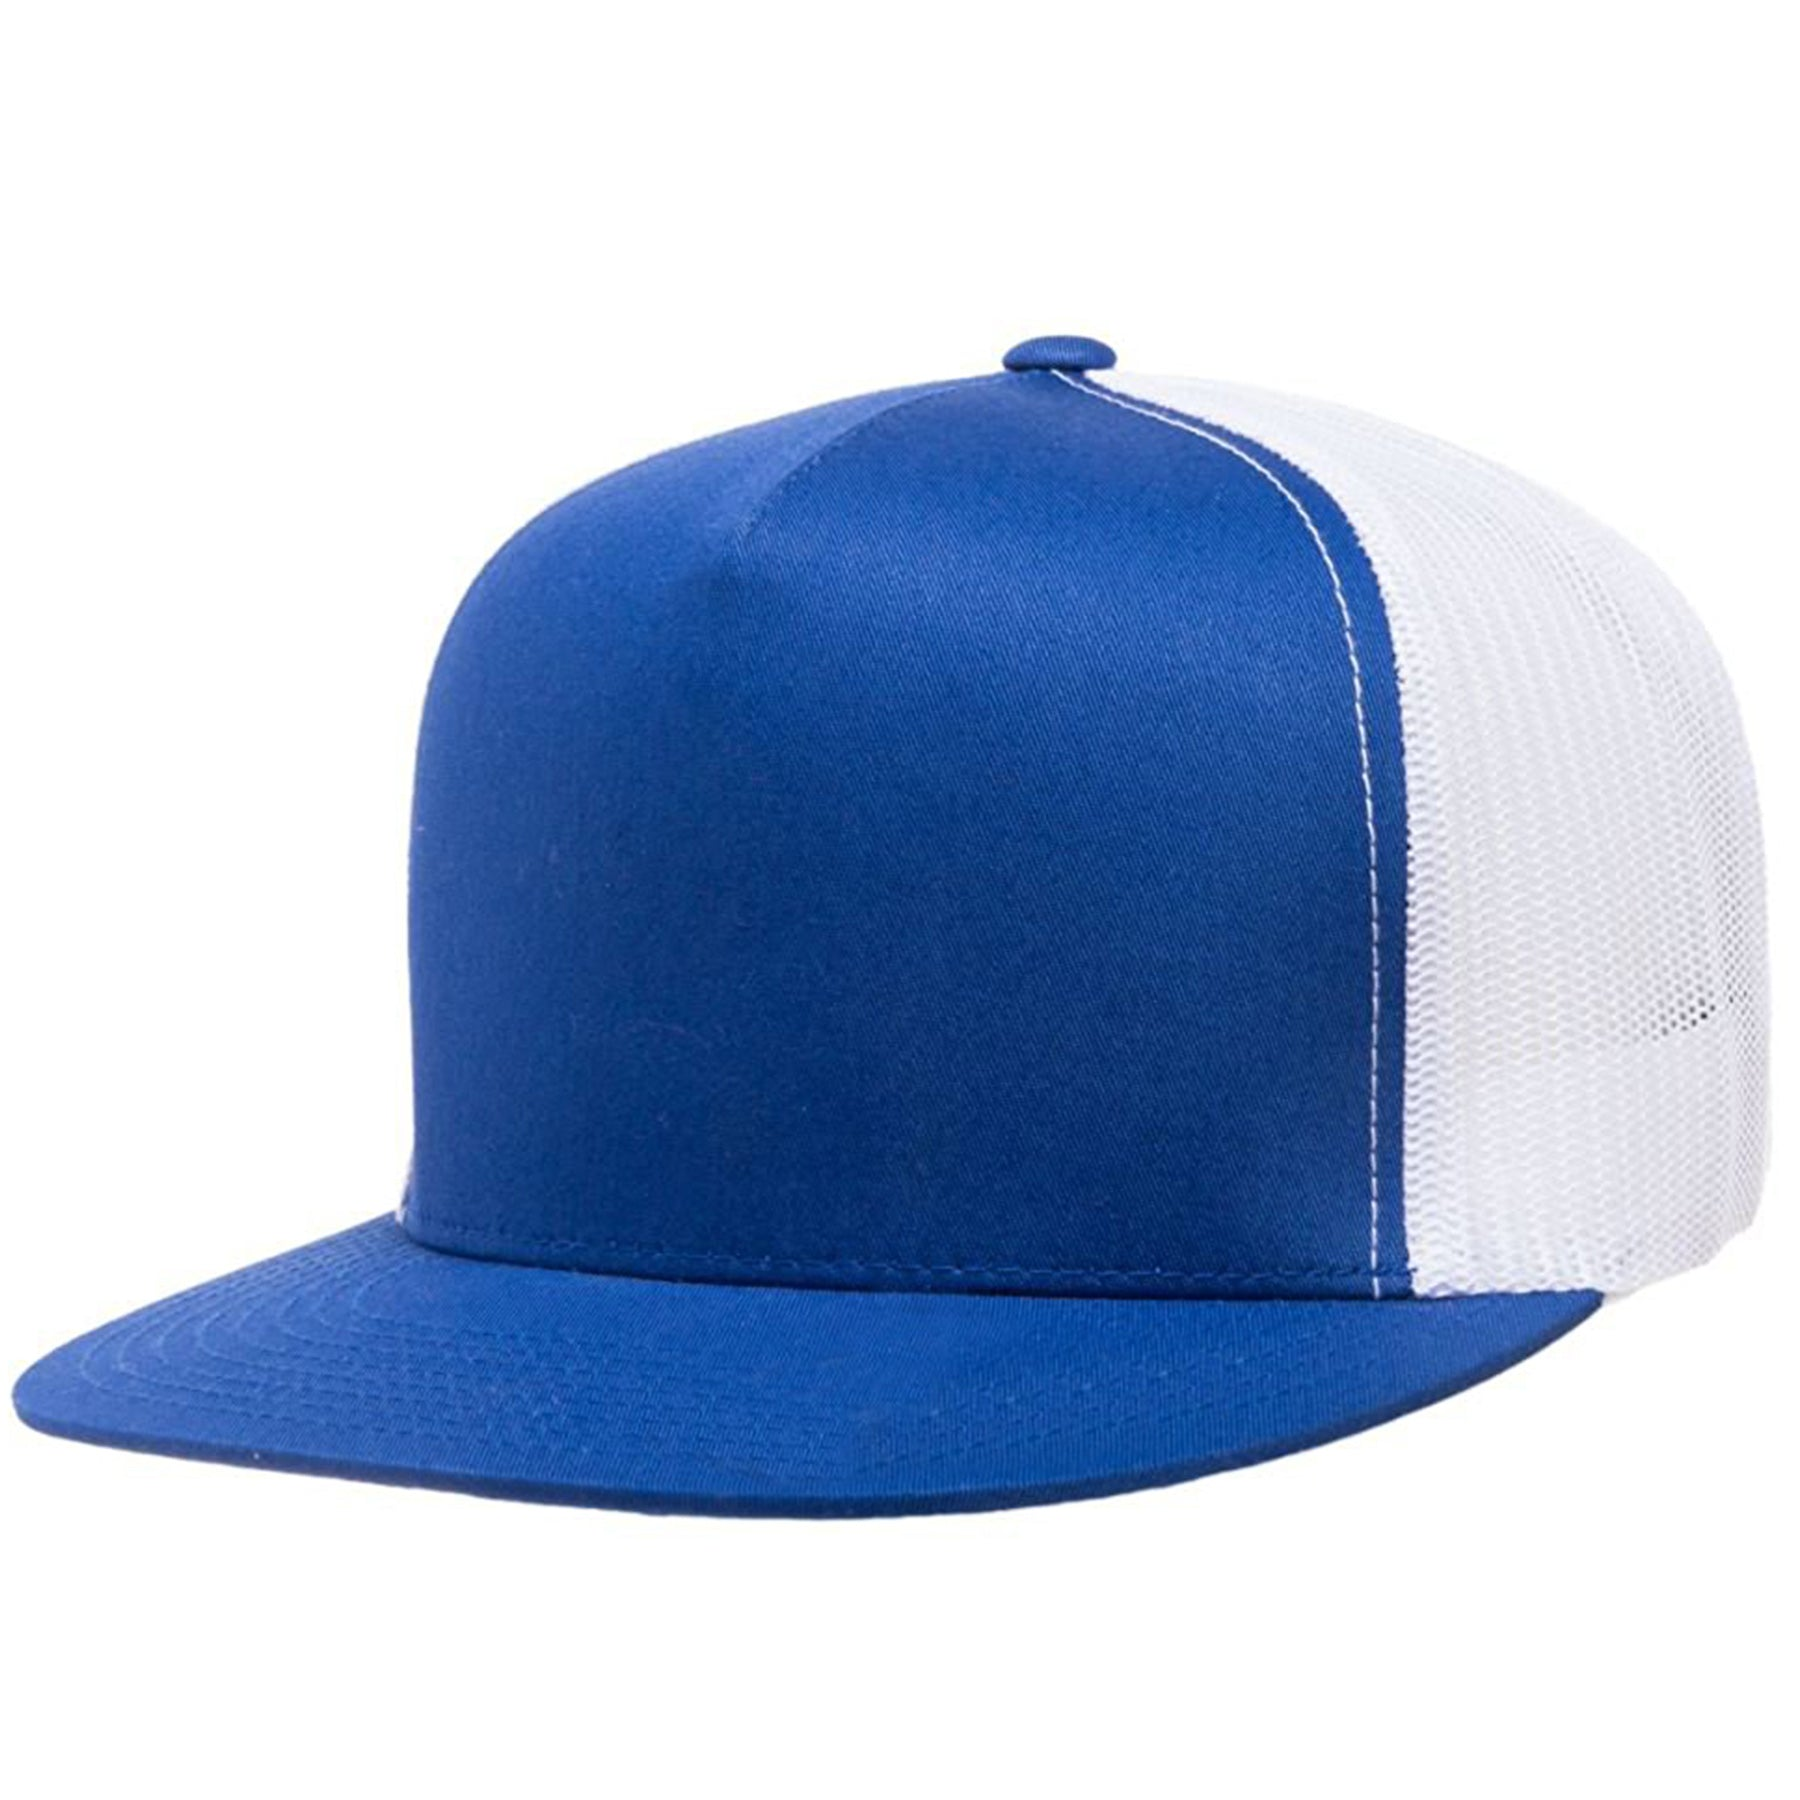 premium selection ee747 789c4 the blank royal blue on white trucker hat has a blue crown and white mesh